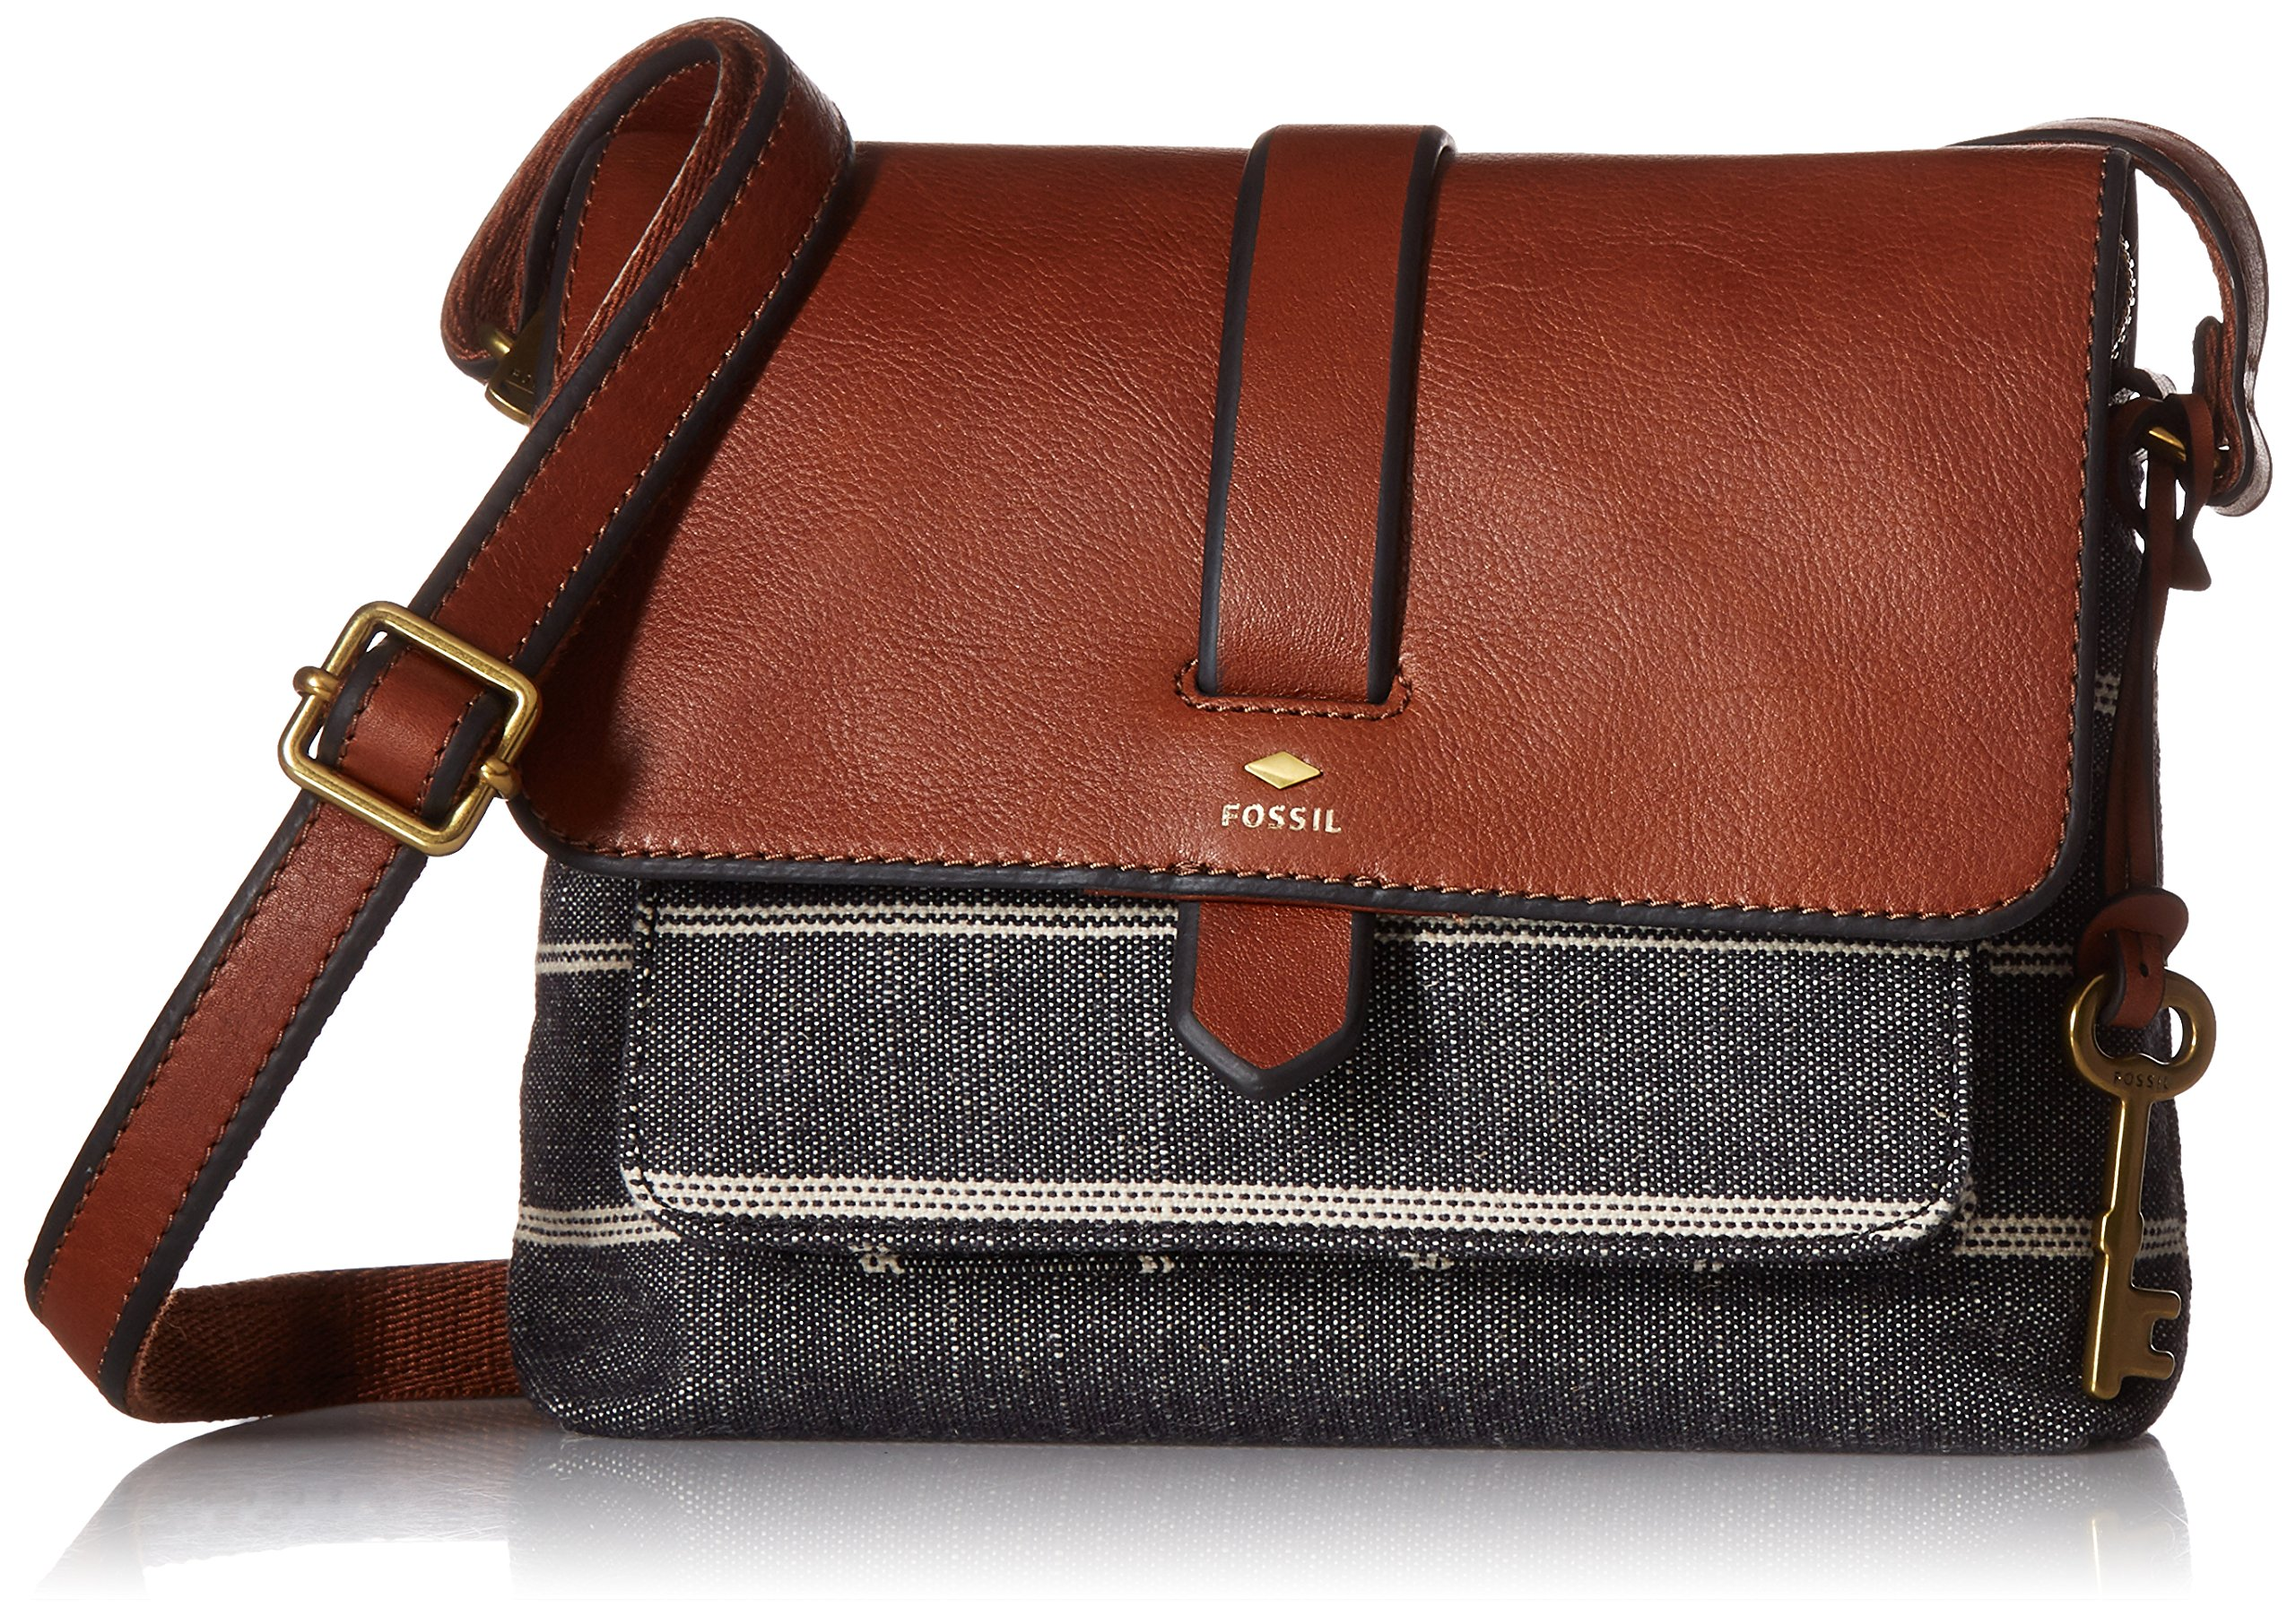 Fossil Kinley Small Crossbody Bag, Chambray,One Size